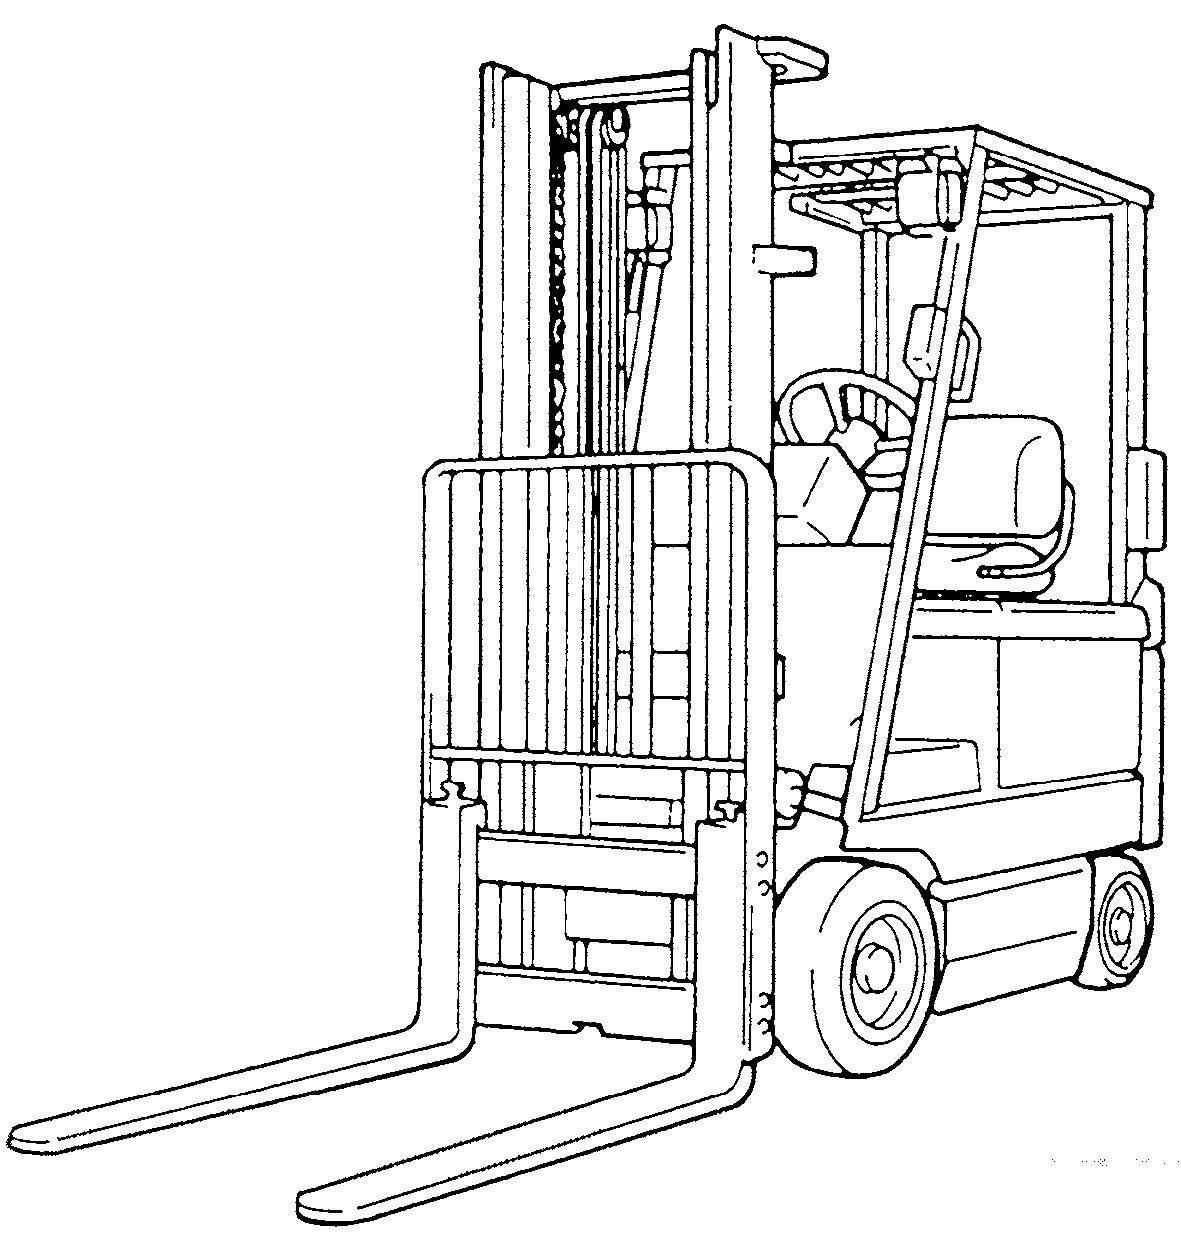 Toyota Forklift 5fgc25 Parts Manual The Amazing. 5fgc25 Parts Source Toyota Forklift Manualdownload User Guide Manual That Easy To Read. Toyota. Toyota 5fgc25 Forklift Wiring Diagram At Scoala.co